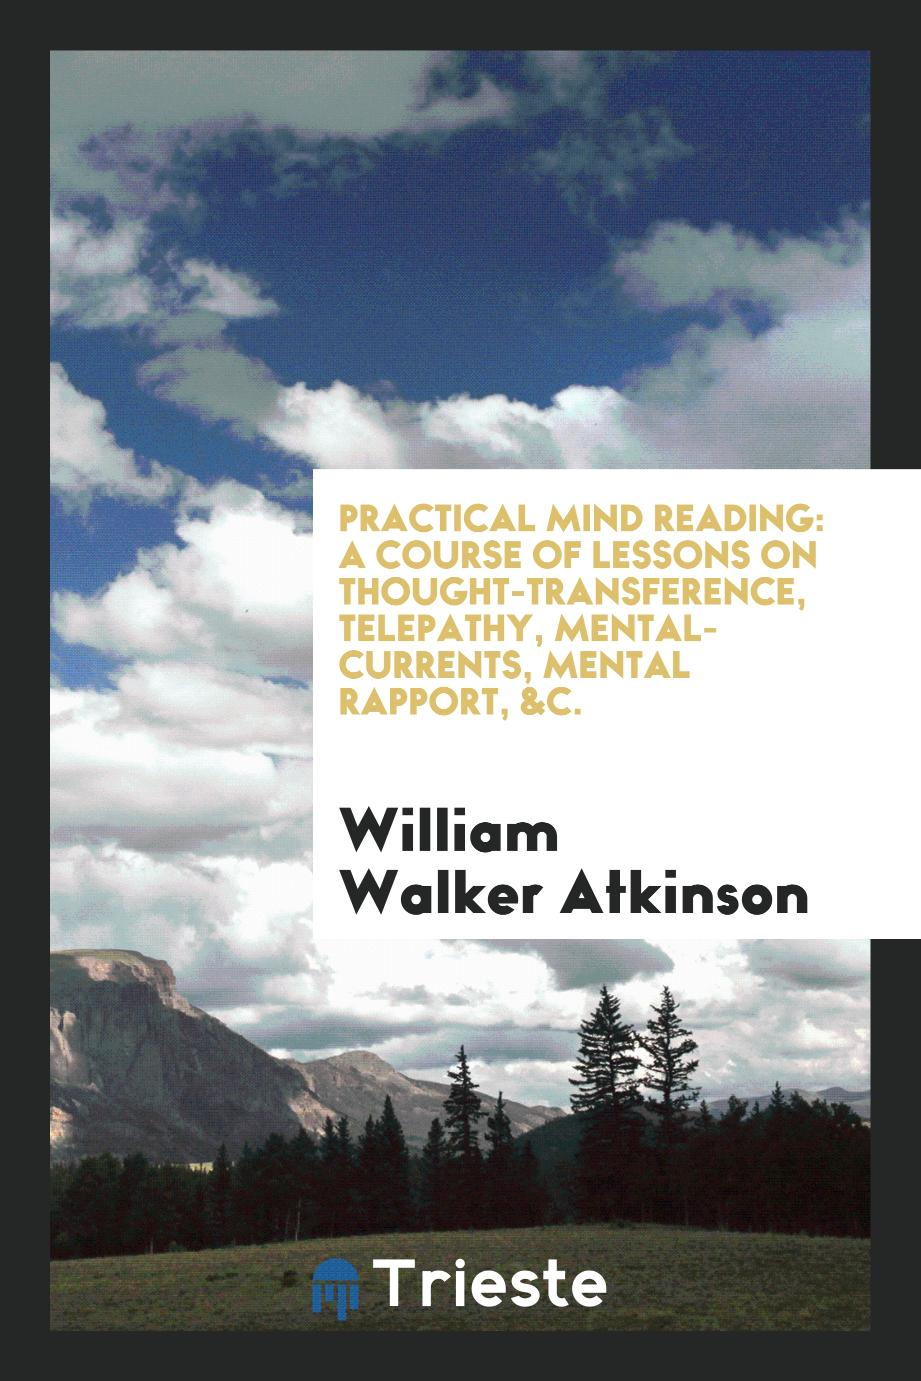 Practical Mind Reading: A Course of Lessons on Thought-Transference, Telepathy, Mental-Currents, Mental Rapport, &C.